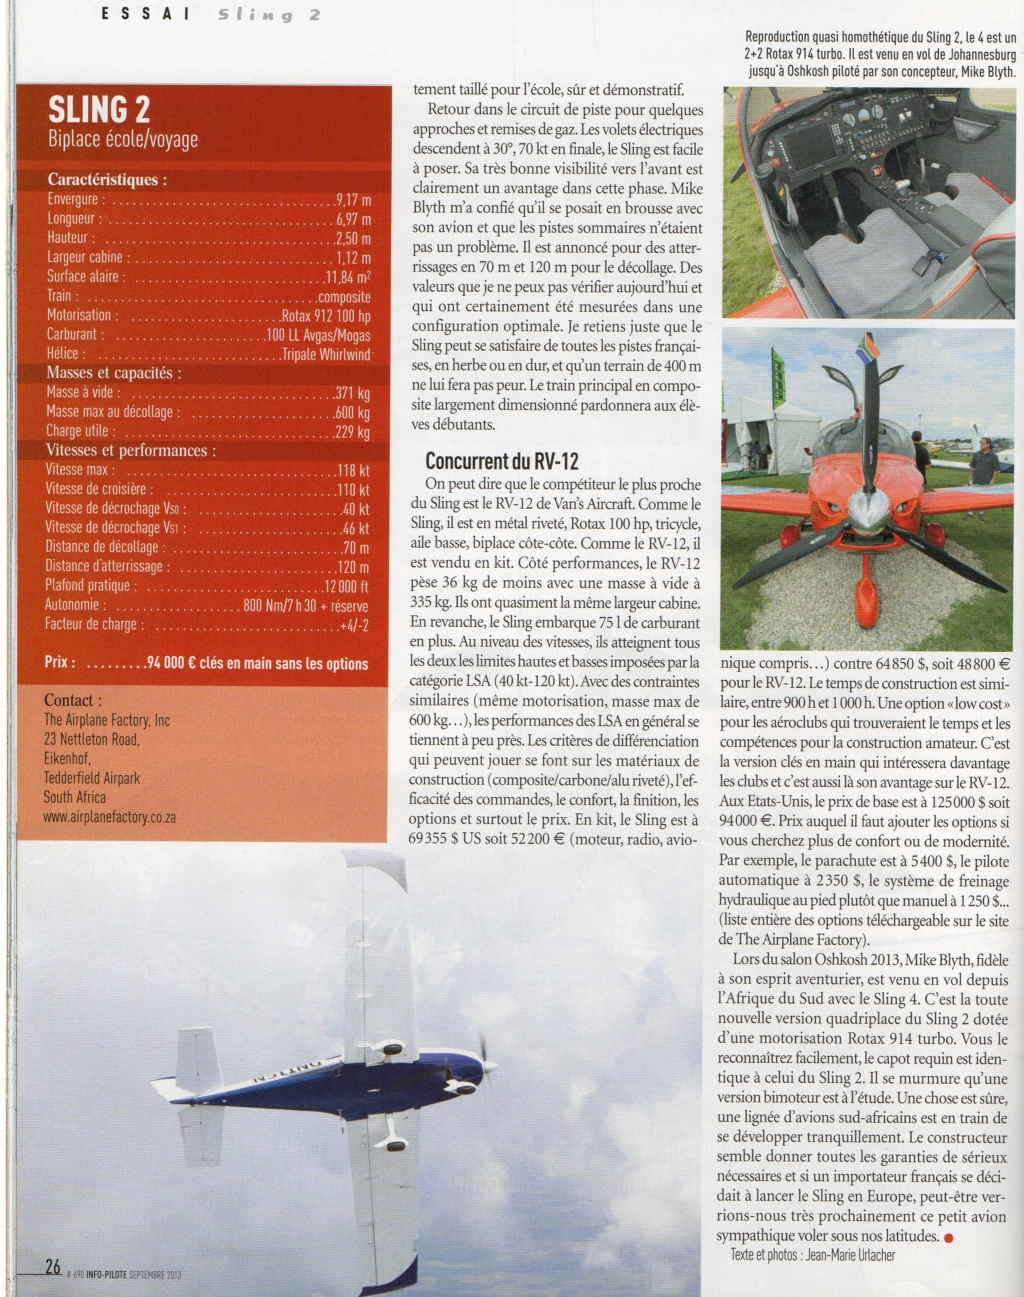 Sling 2 Article Info Pilote Info_p25